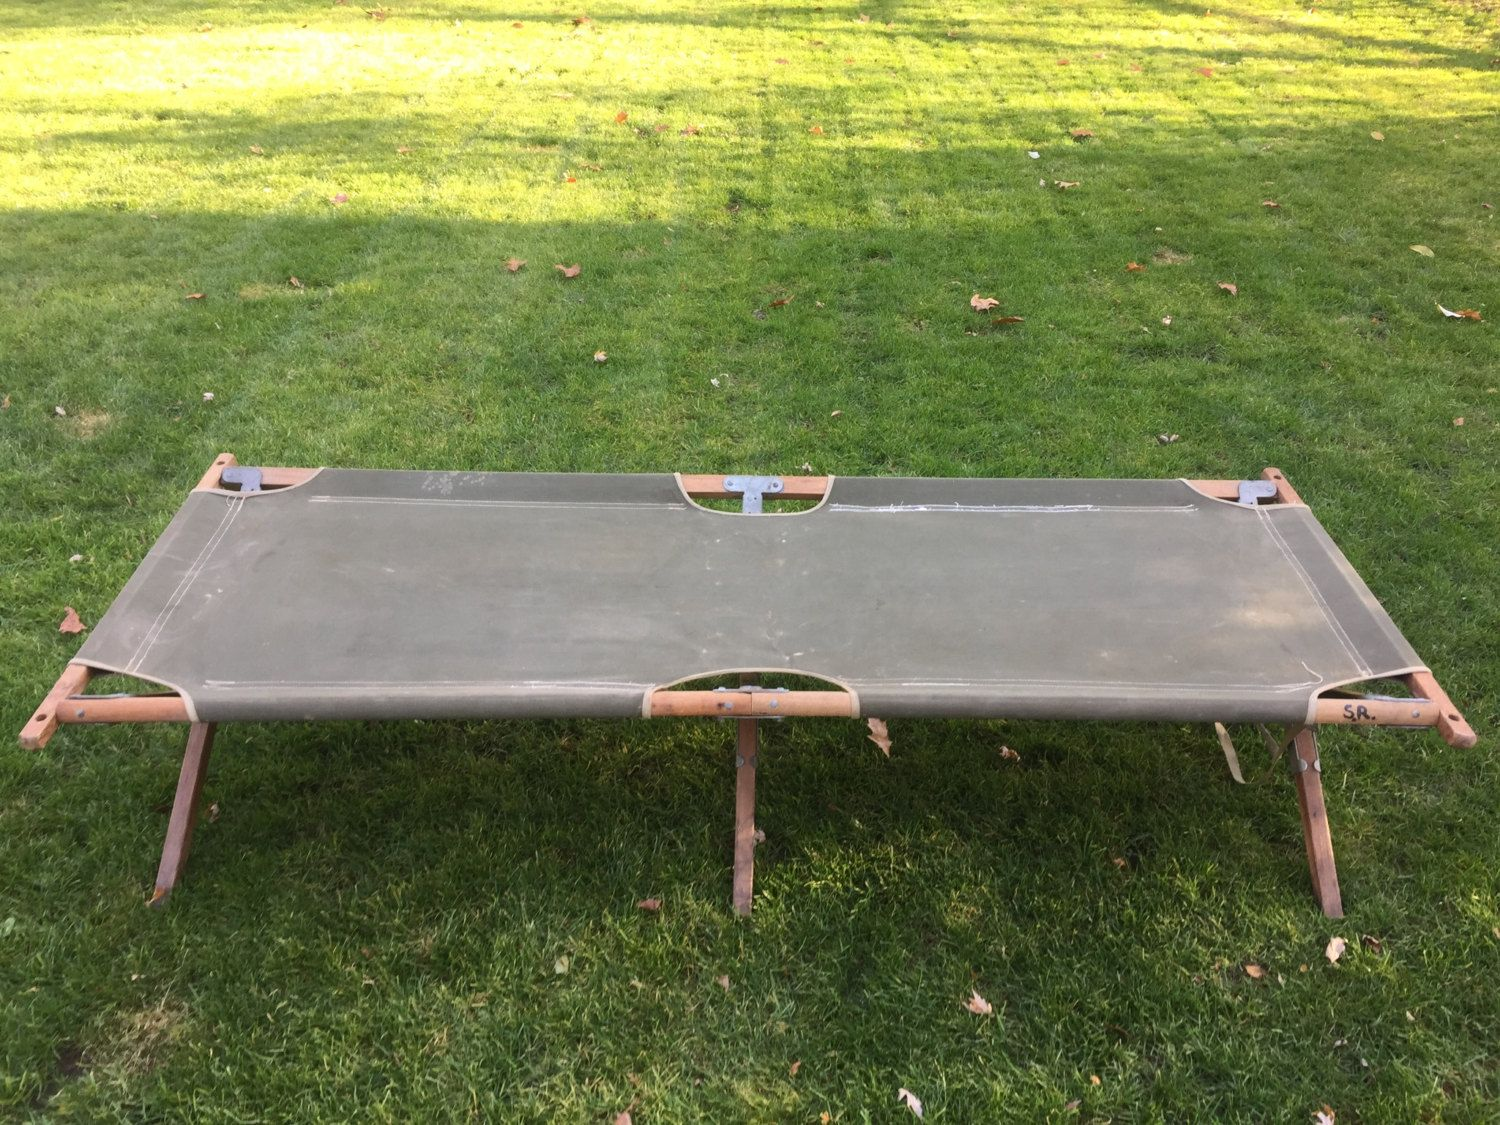 This Is A Great Vintage Army Military Canvas And Wood Folding Cot This Portable Cot Makes For An Excellent Day Bed Or Outdoor Seat Wood Frame Camping Cot Wood